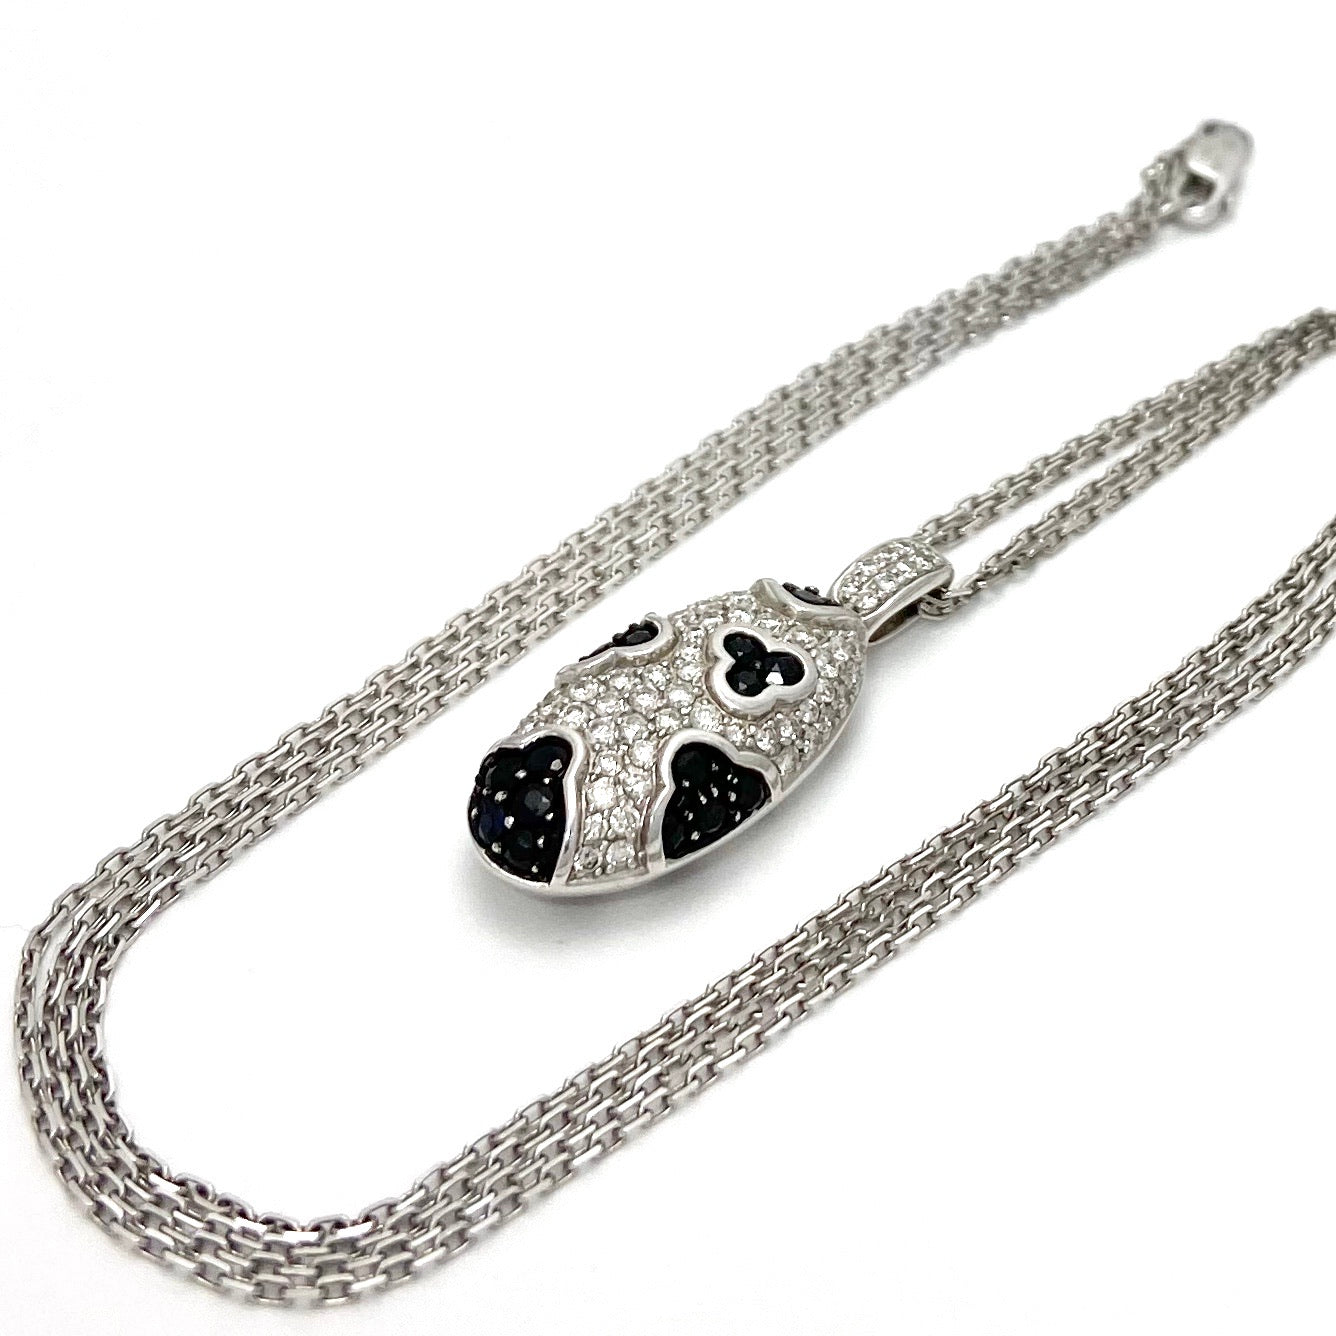 18K White Gold Diamond and Sapphire Oval Shaped Pendant with 18K Chain